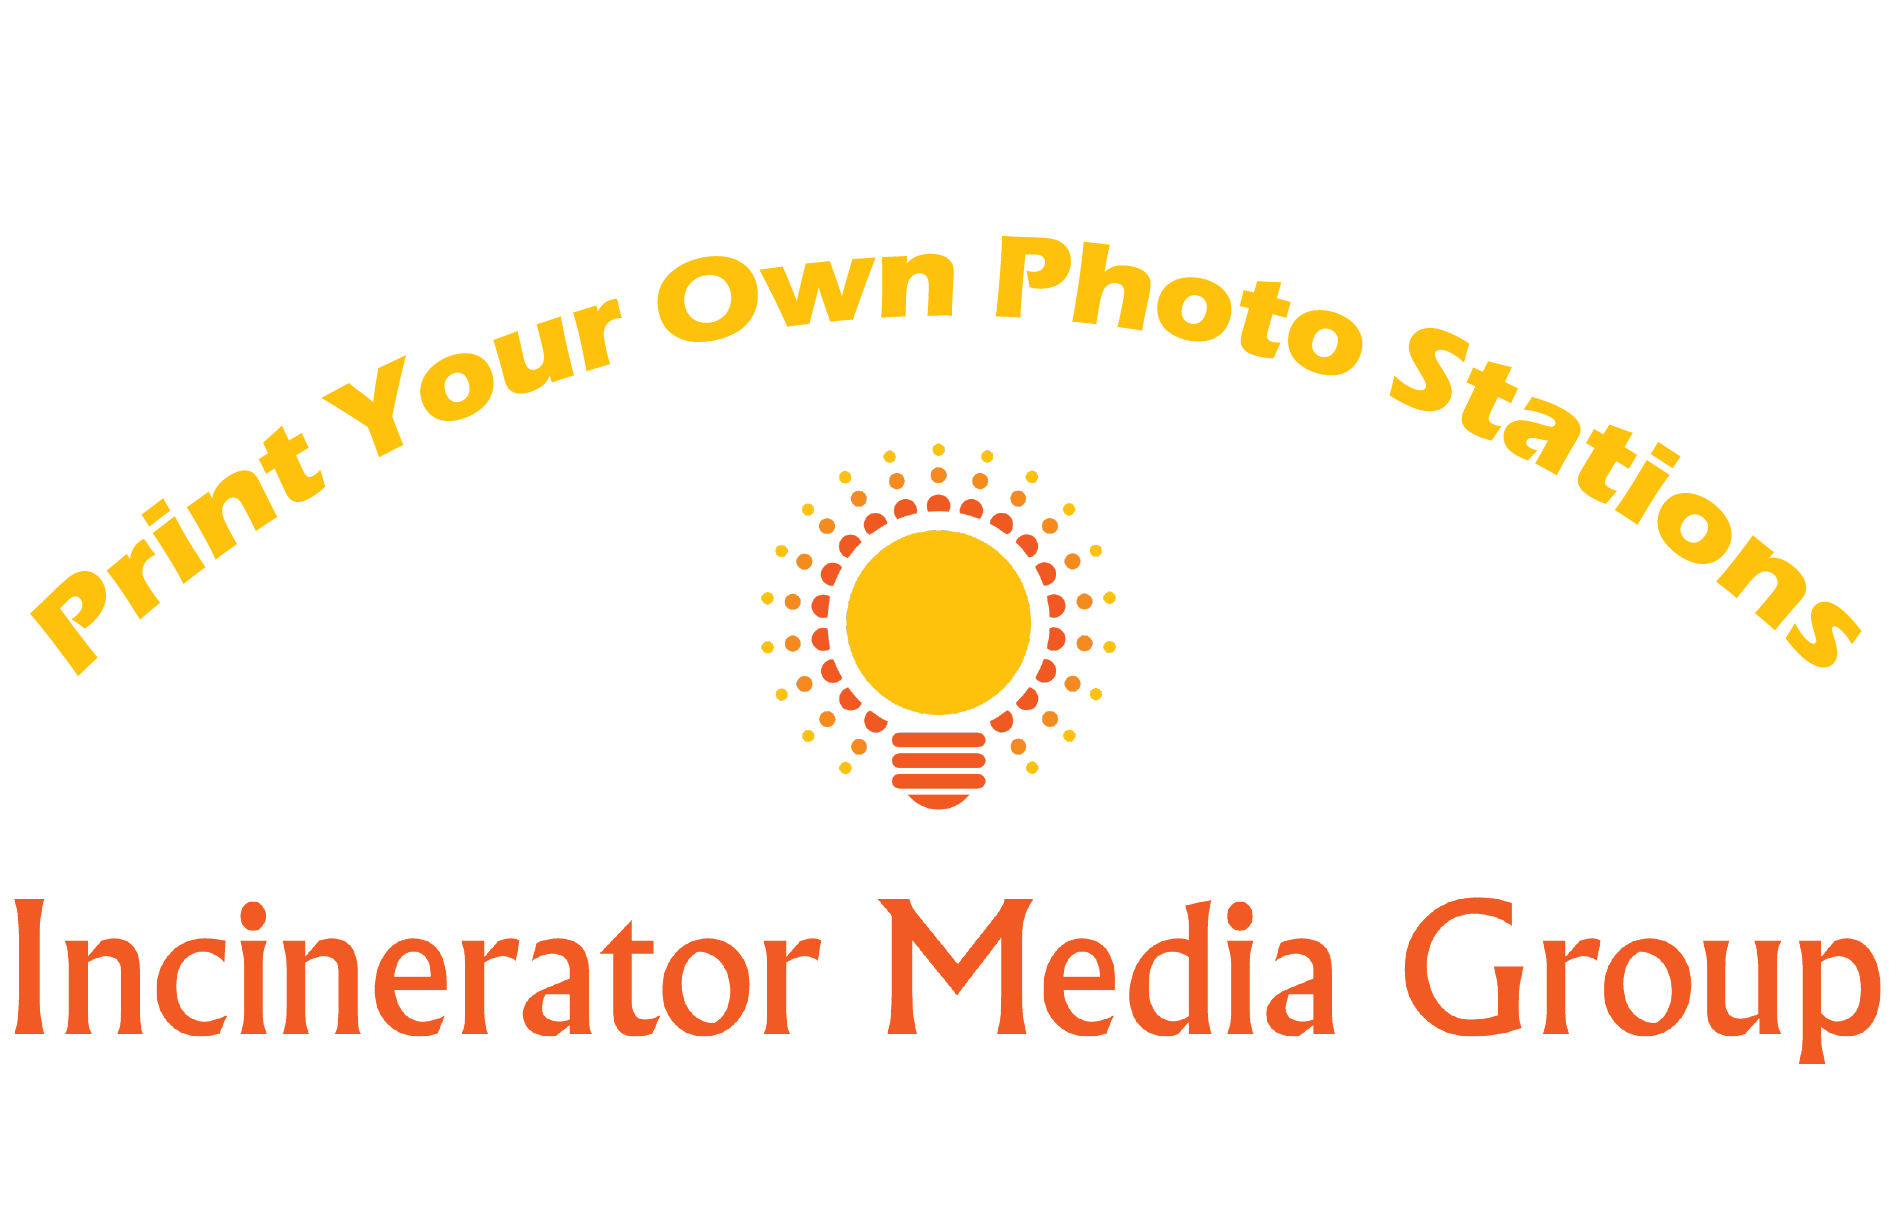 Incienerator Media Group